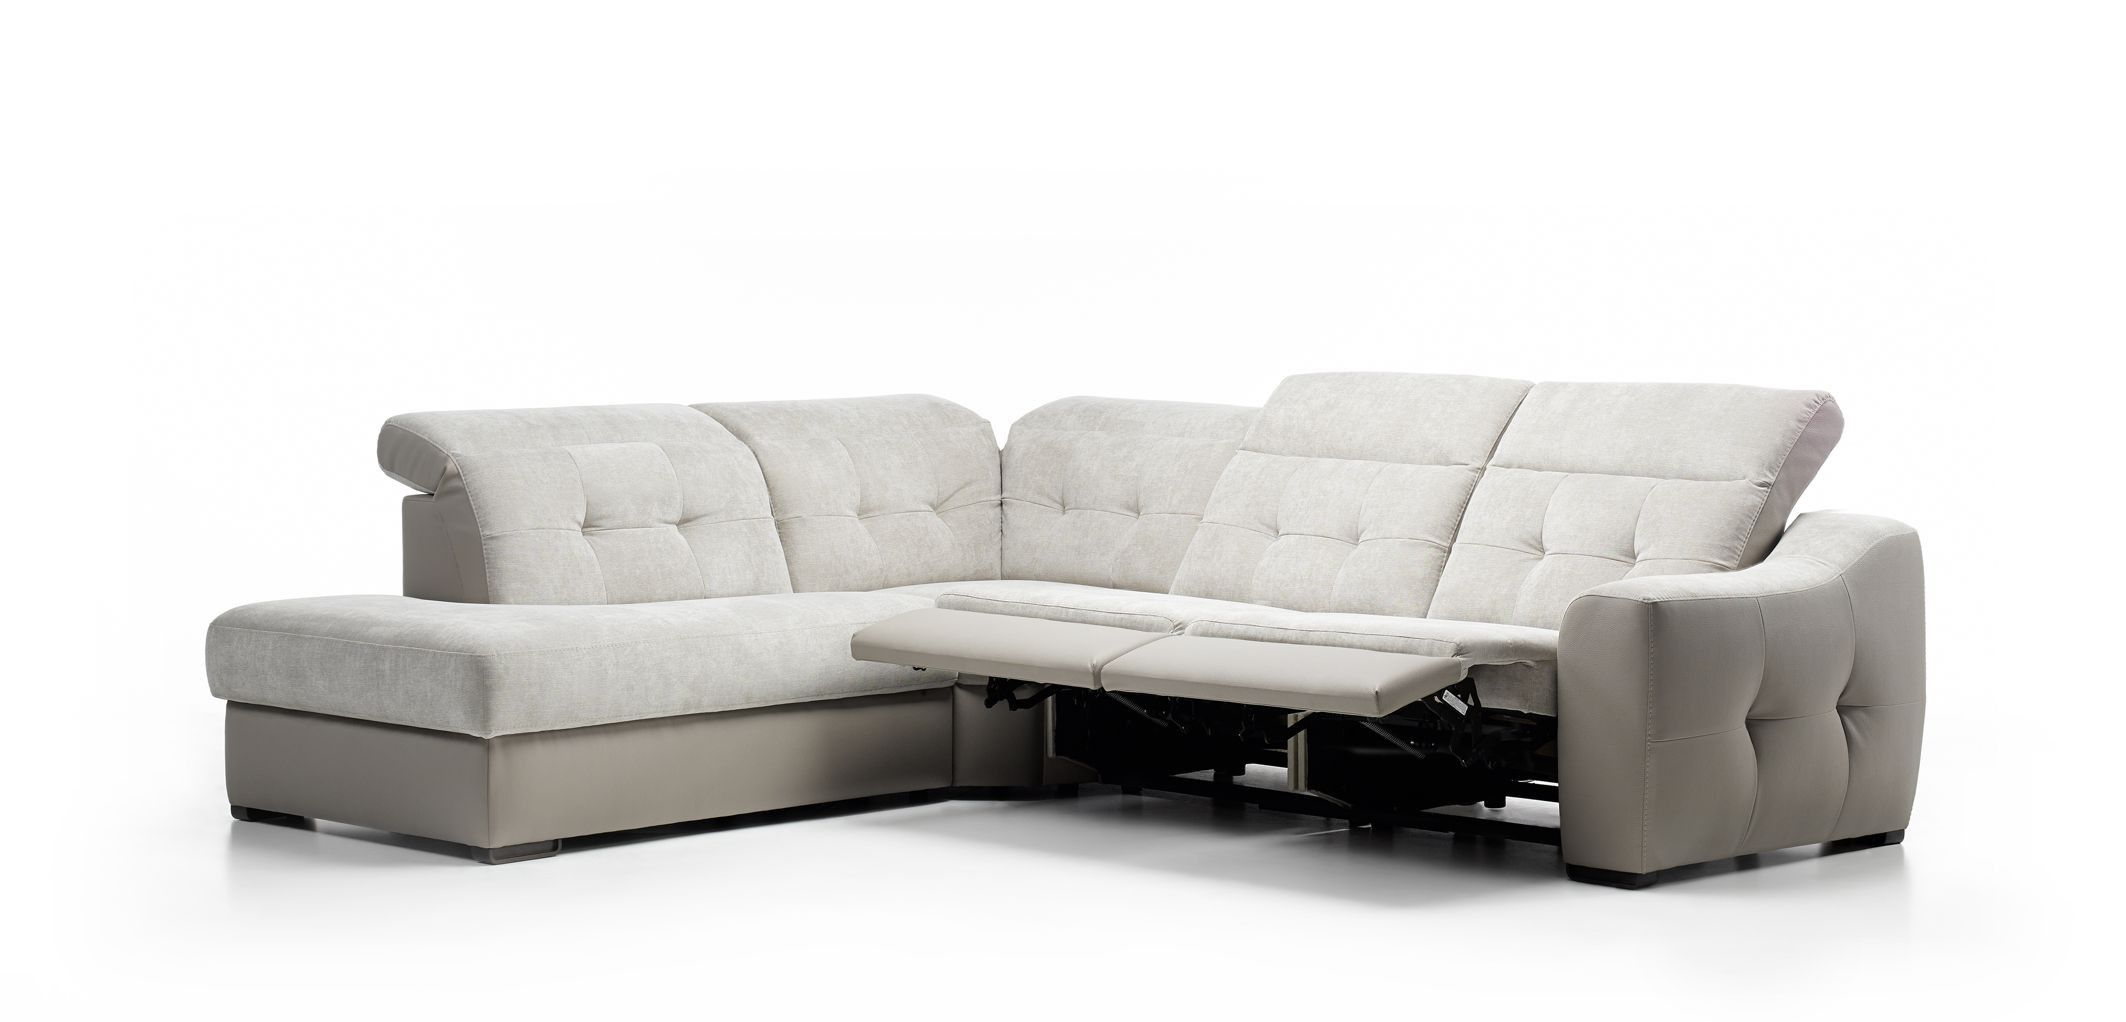 awesome Awesome Contemporary Sofa Bed 40 With Additional Hme ...